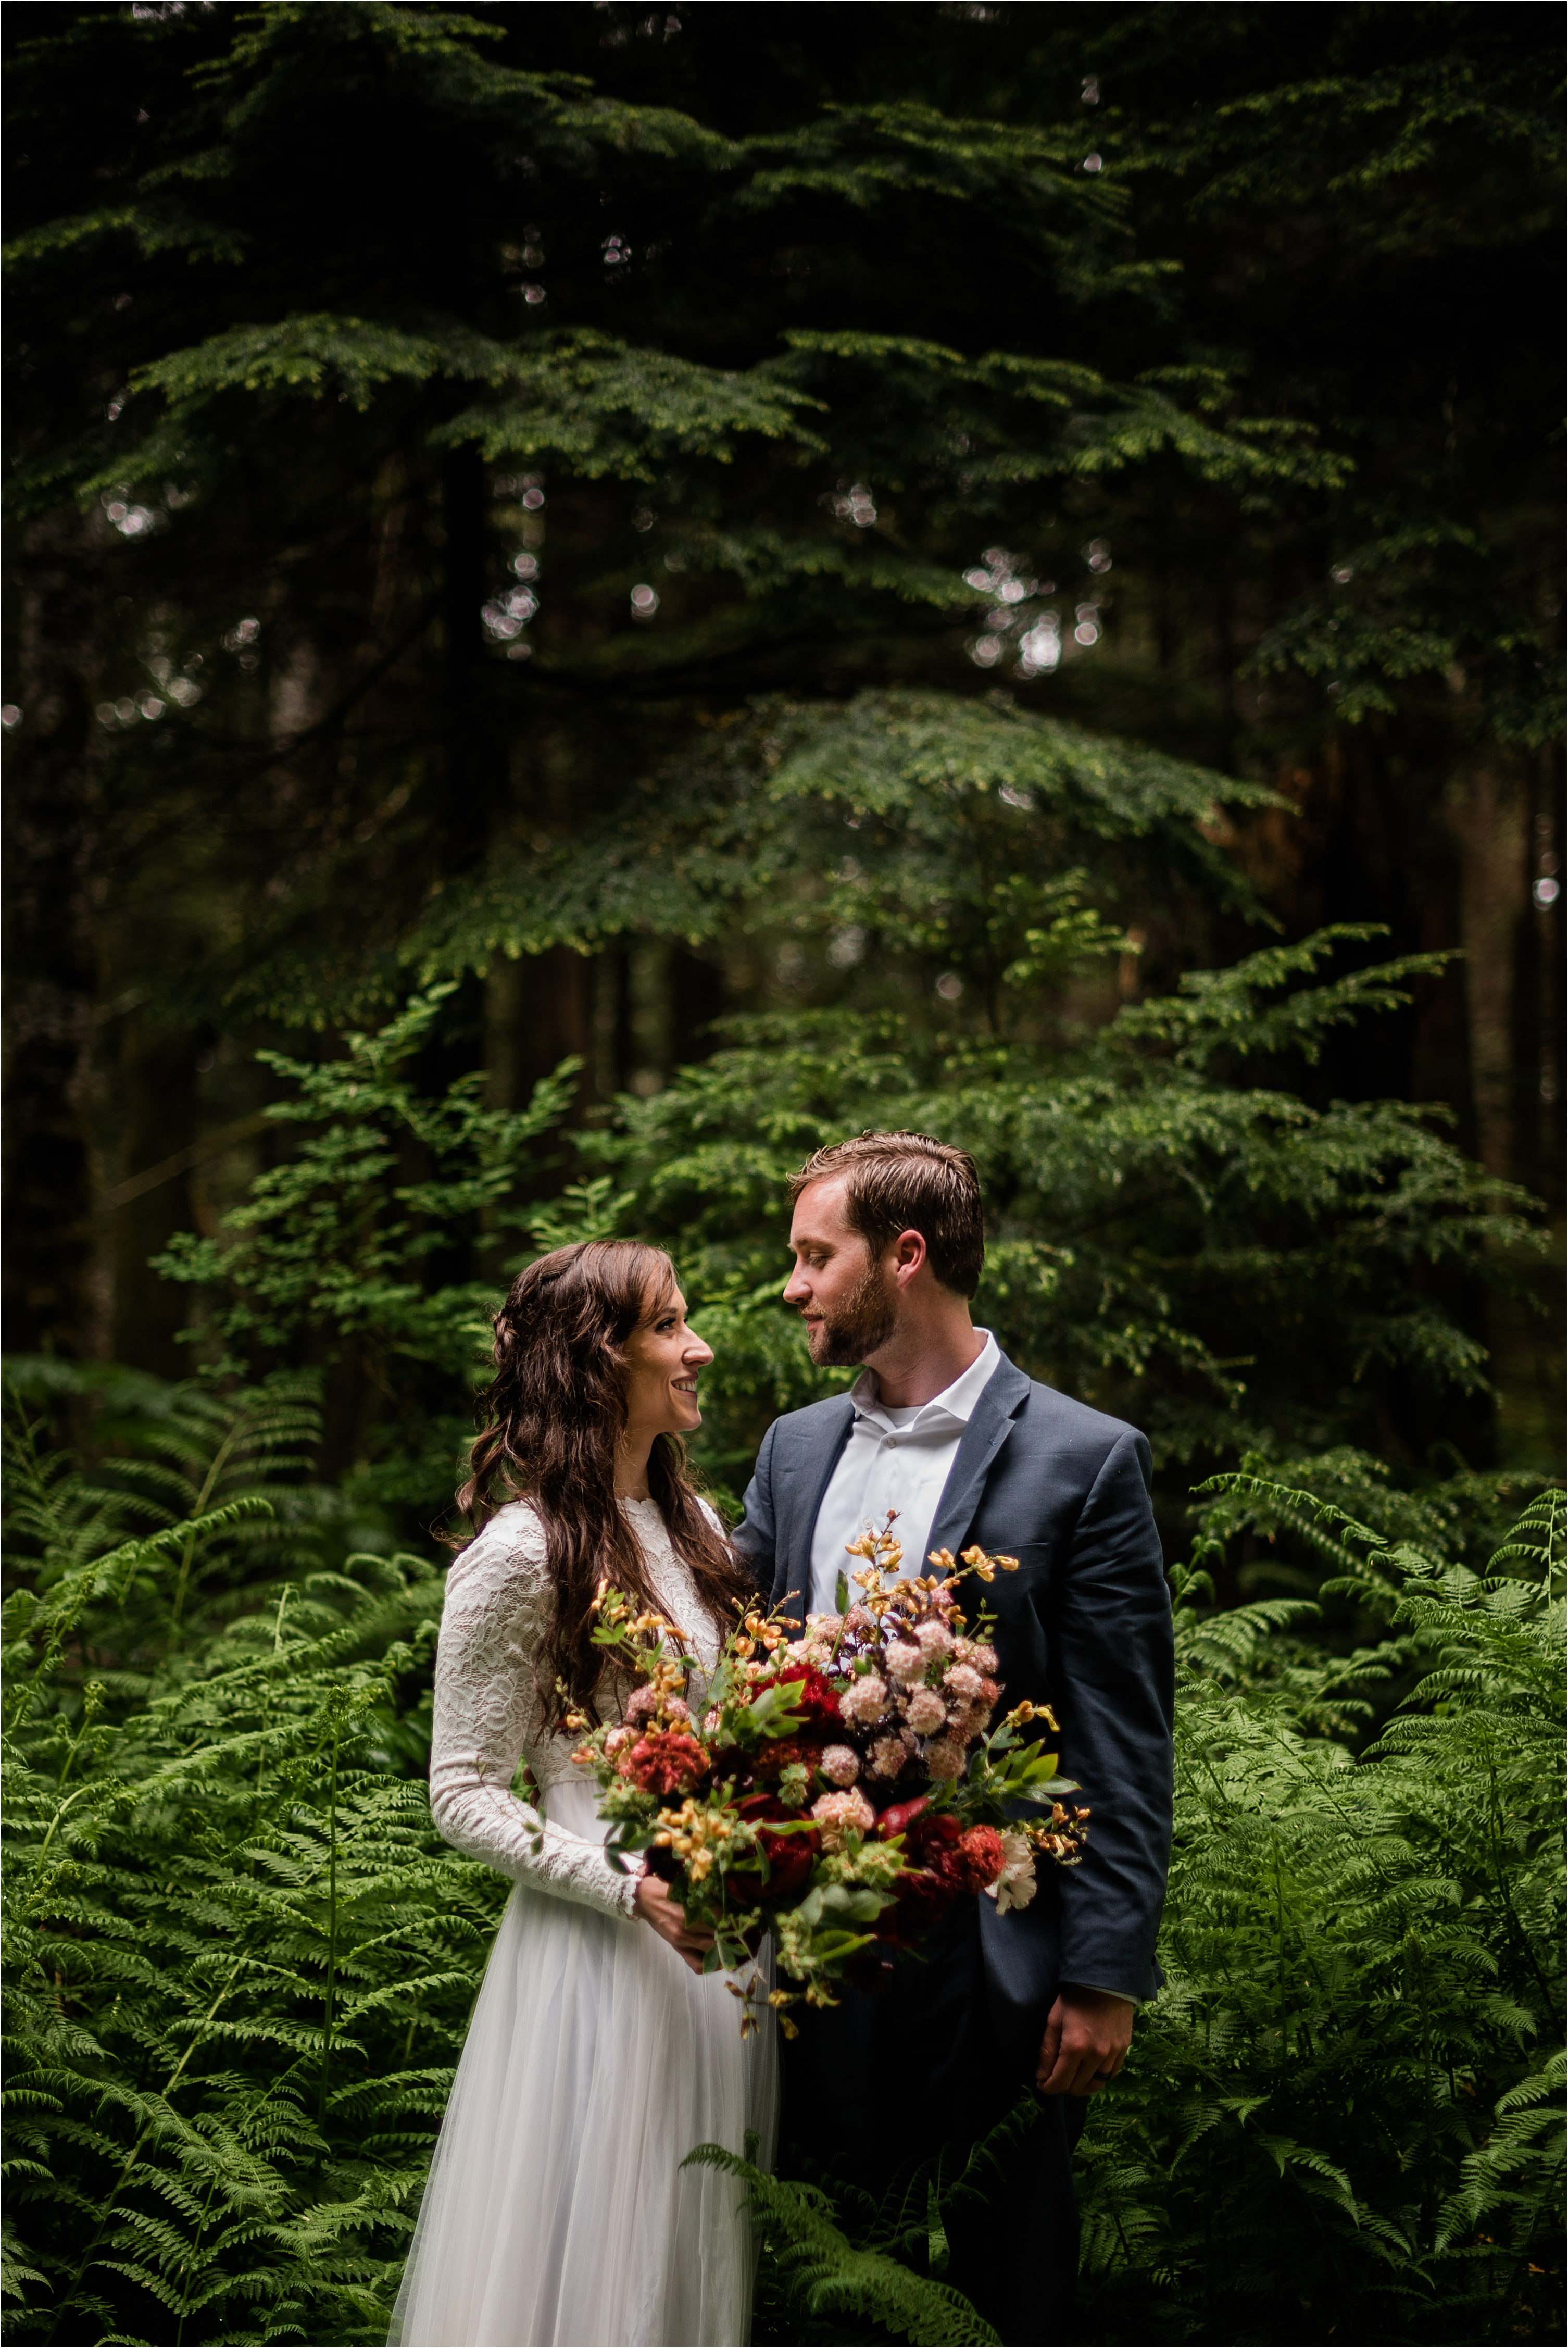 A rainy forest elopement on Mt Baker. Image by Forthright Photo, Seattle Wedding Photographers.